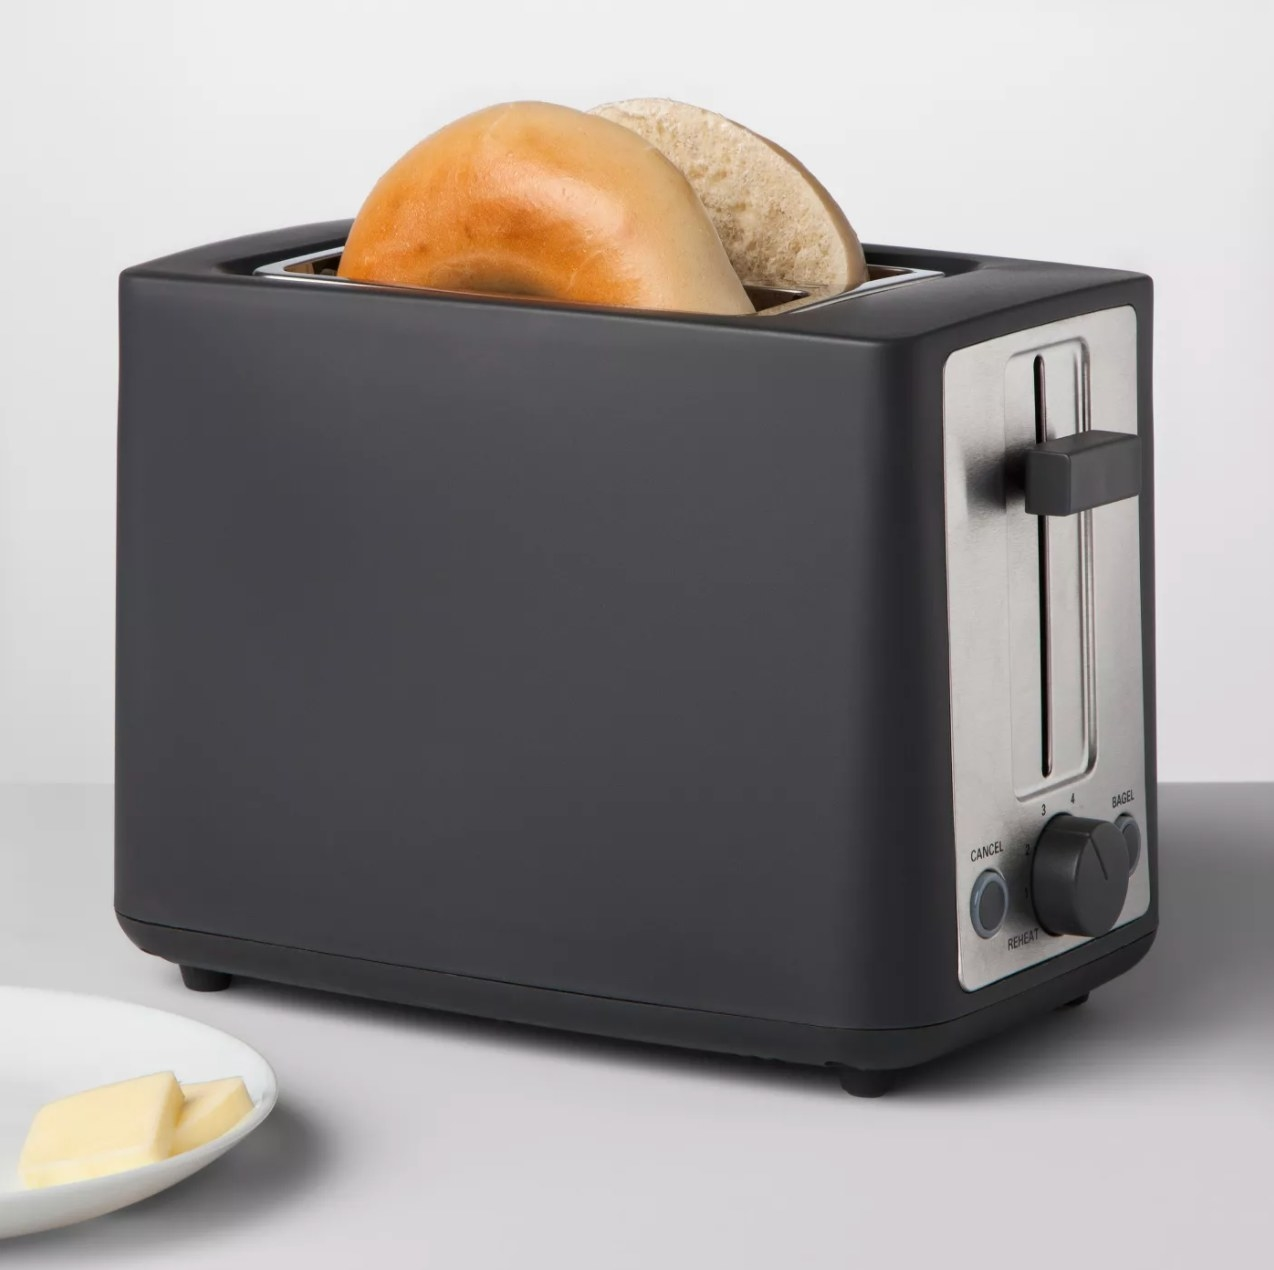 The toaster heating up a bagel with a side of butter